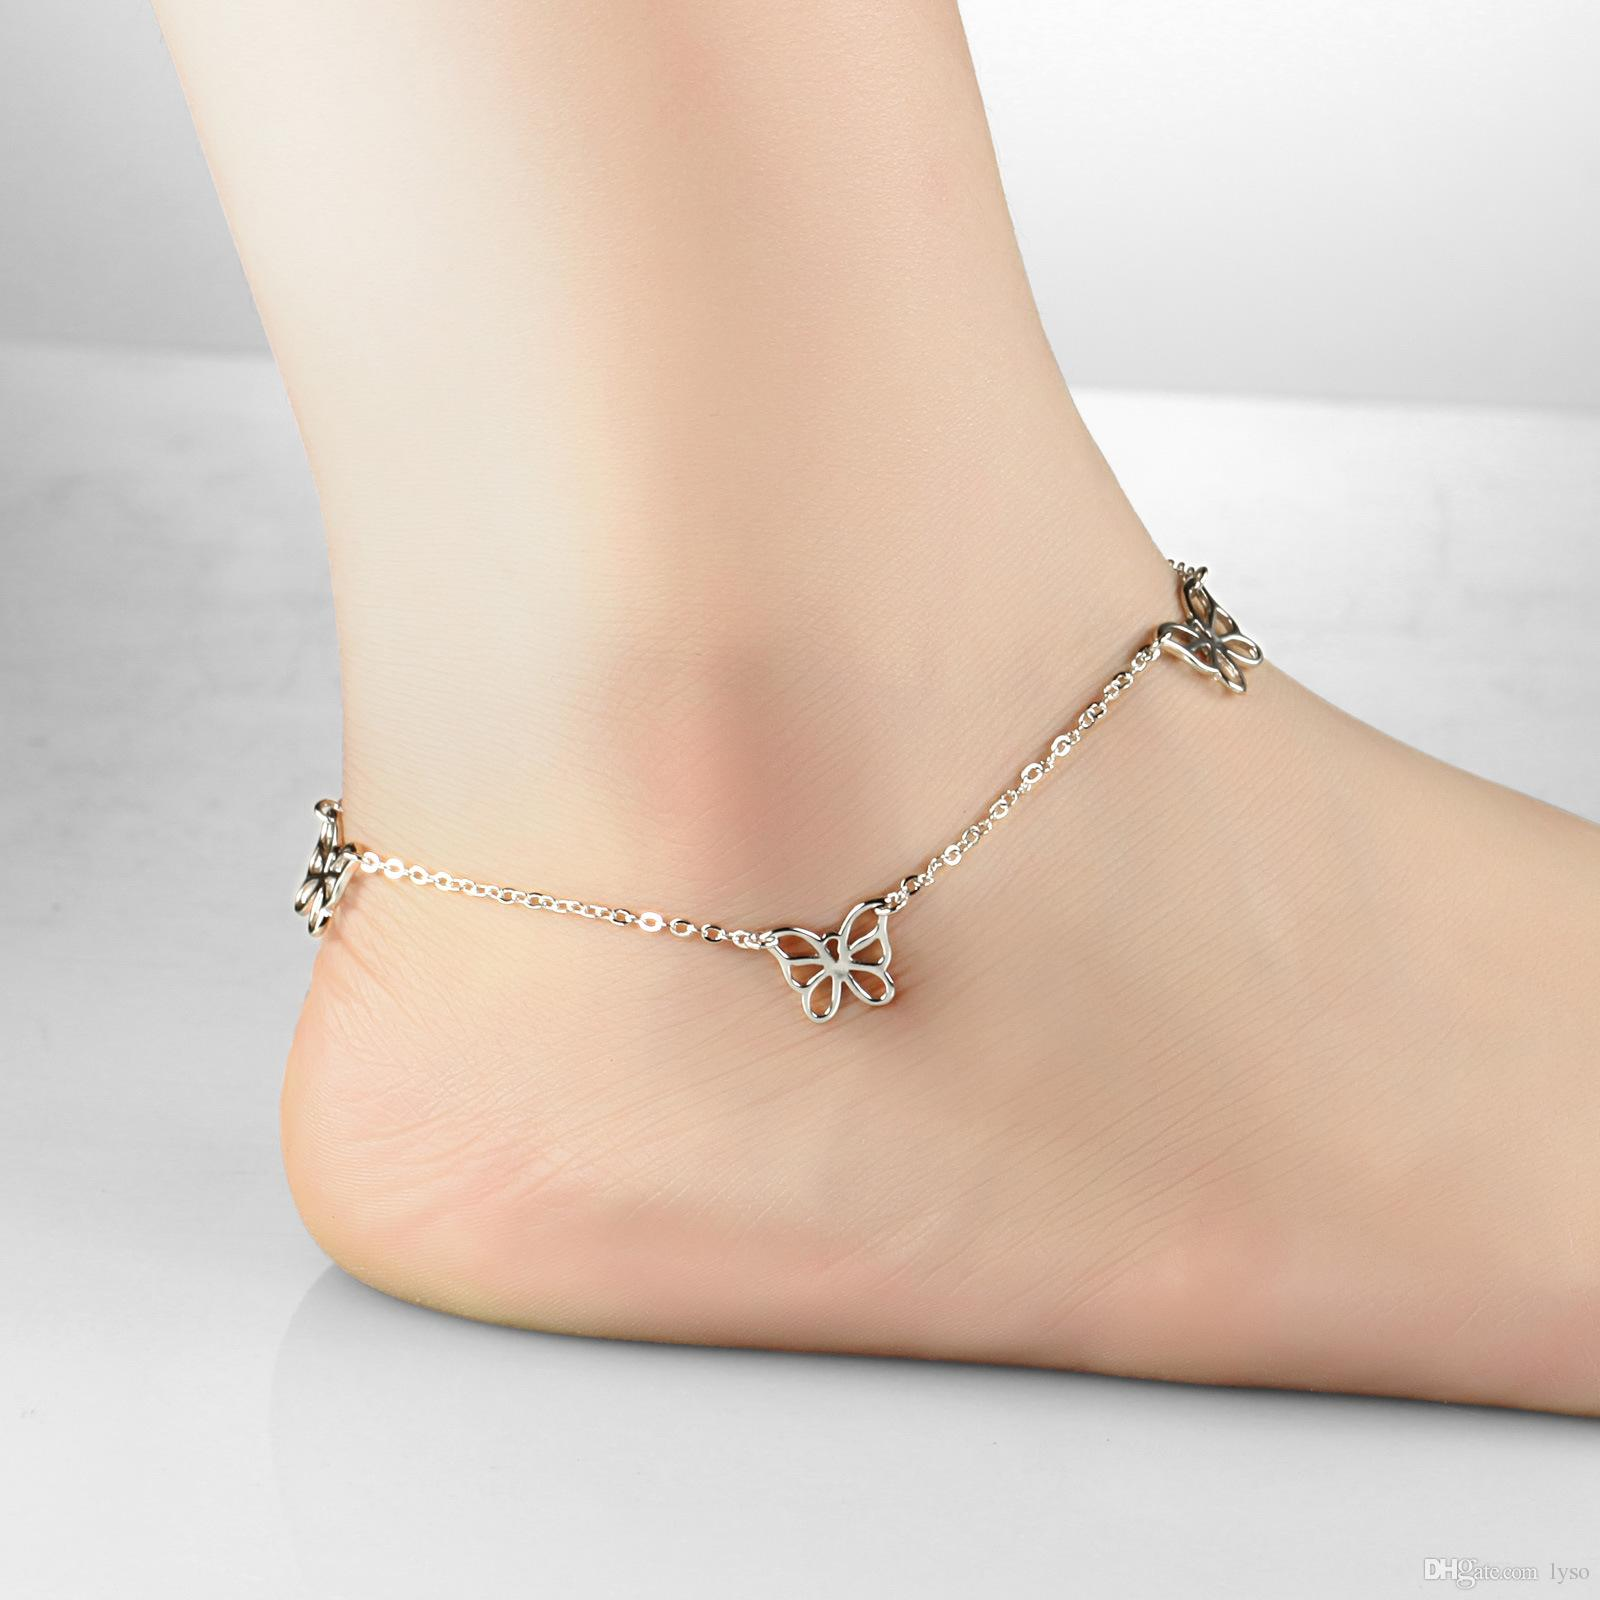 women big black fashion save cheap anklet product buy wax lacing bracelet for tortoise vintage anklets turtle minimalist ankles ankle string white jewelry foot